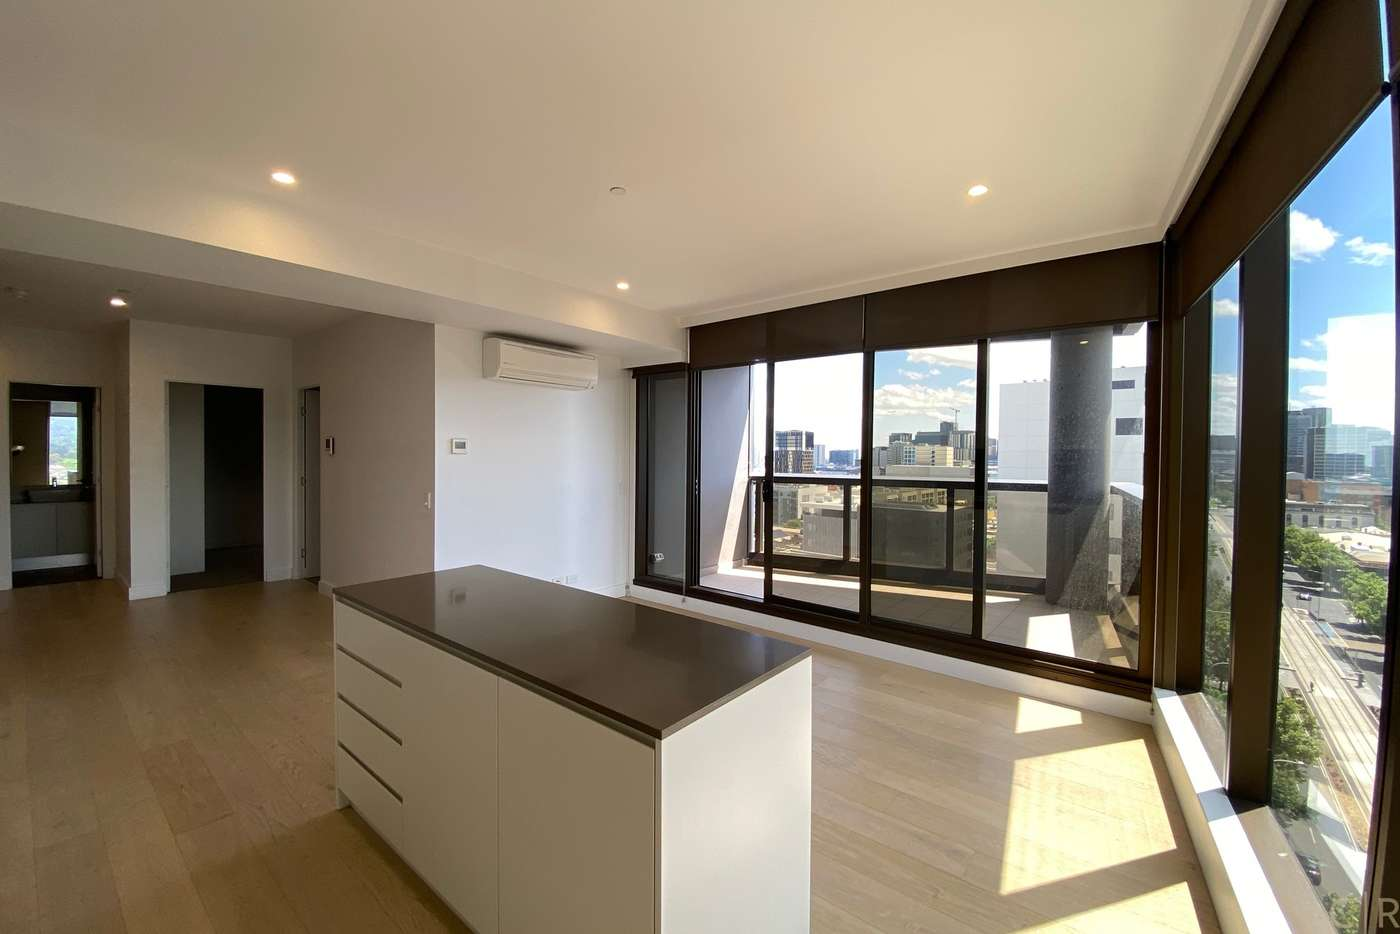 Main view of Homely apartment listing, 1206/421 King William Street, Adelaide SA 5000